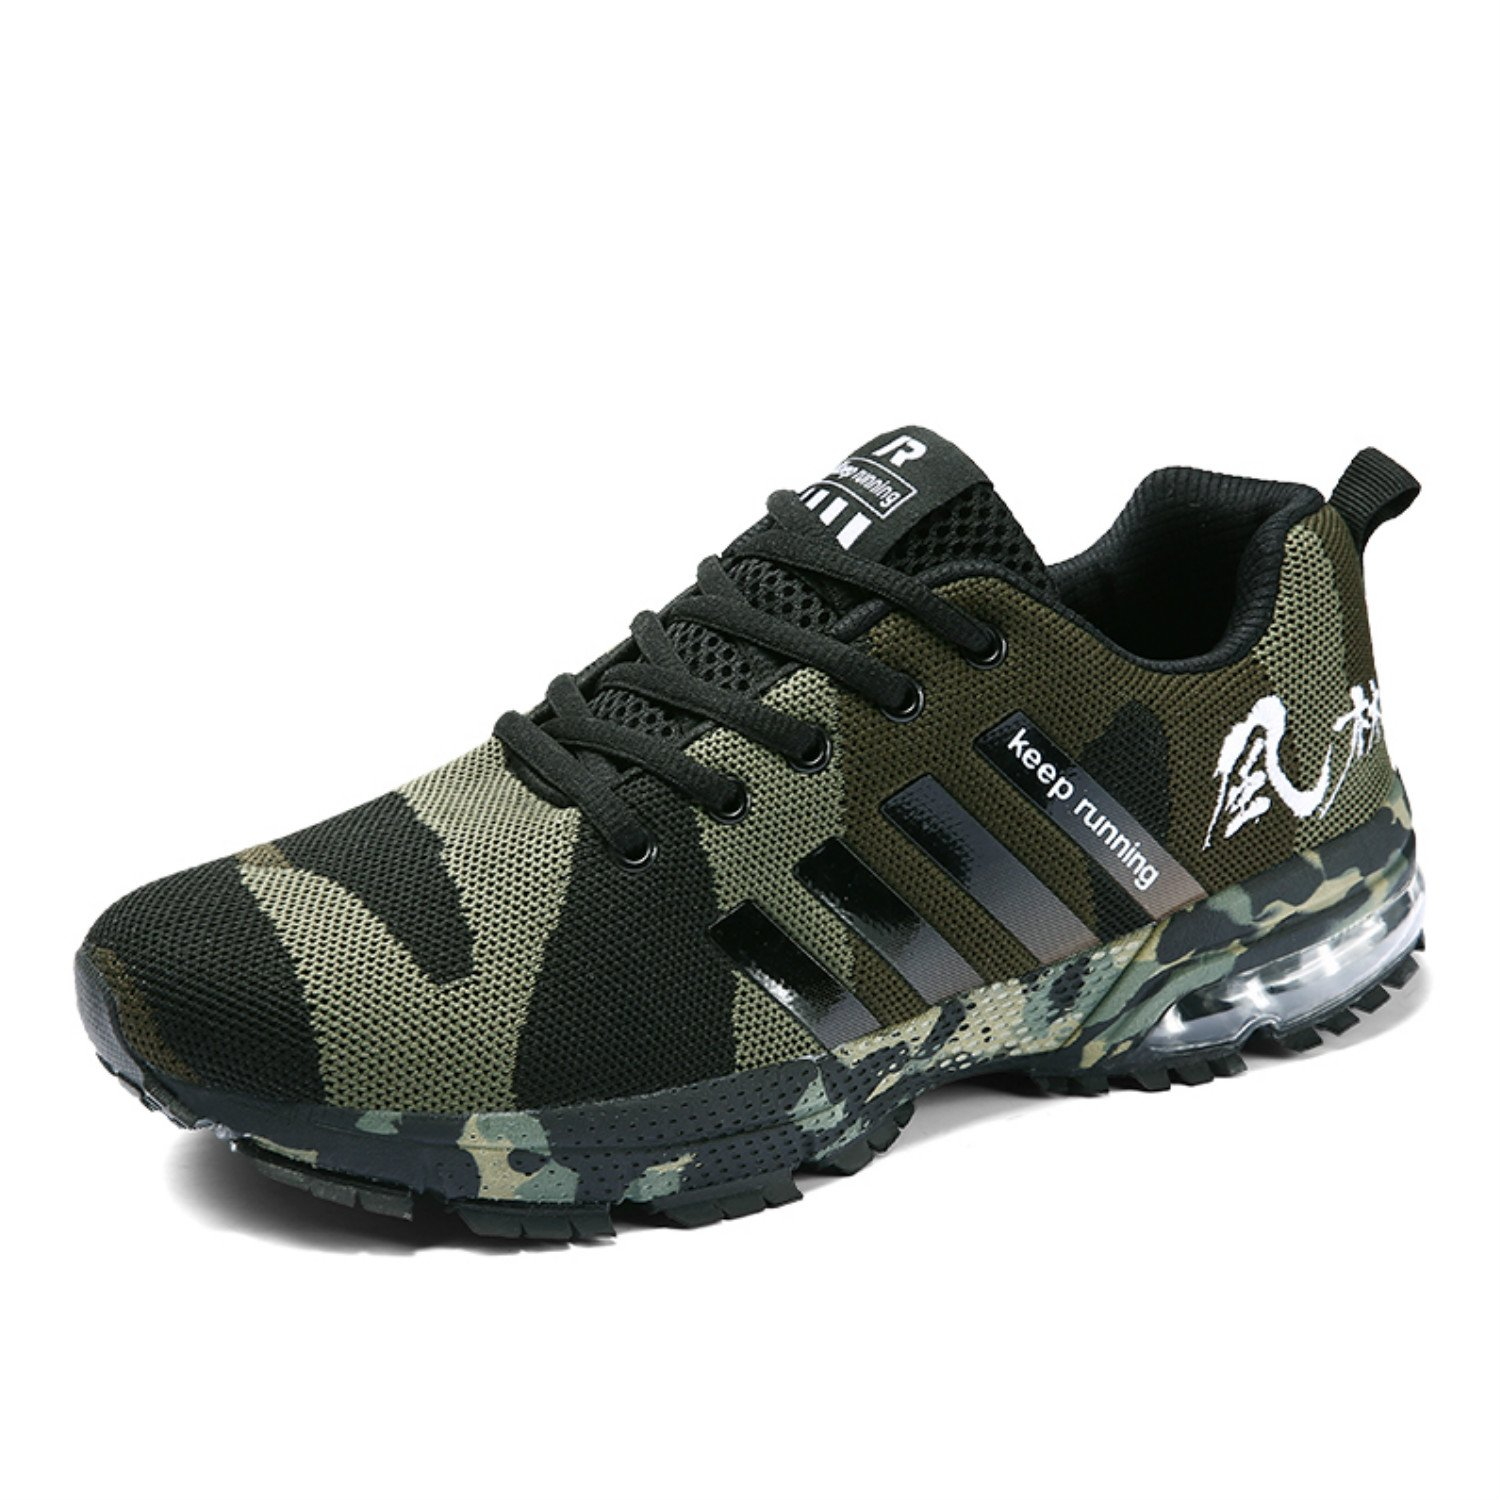 お気にいる [Topteck] レディース Men B07D757693 Green Camo Army Army Green Label39=8 B(M) US Women/6.5 D(M) US Men Label39=8 B(M) US Women/6.5 D(M) US Men|Camo Army Green, 増田町:7604b7fa --- domaska.lt